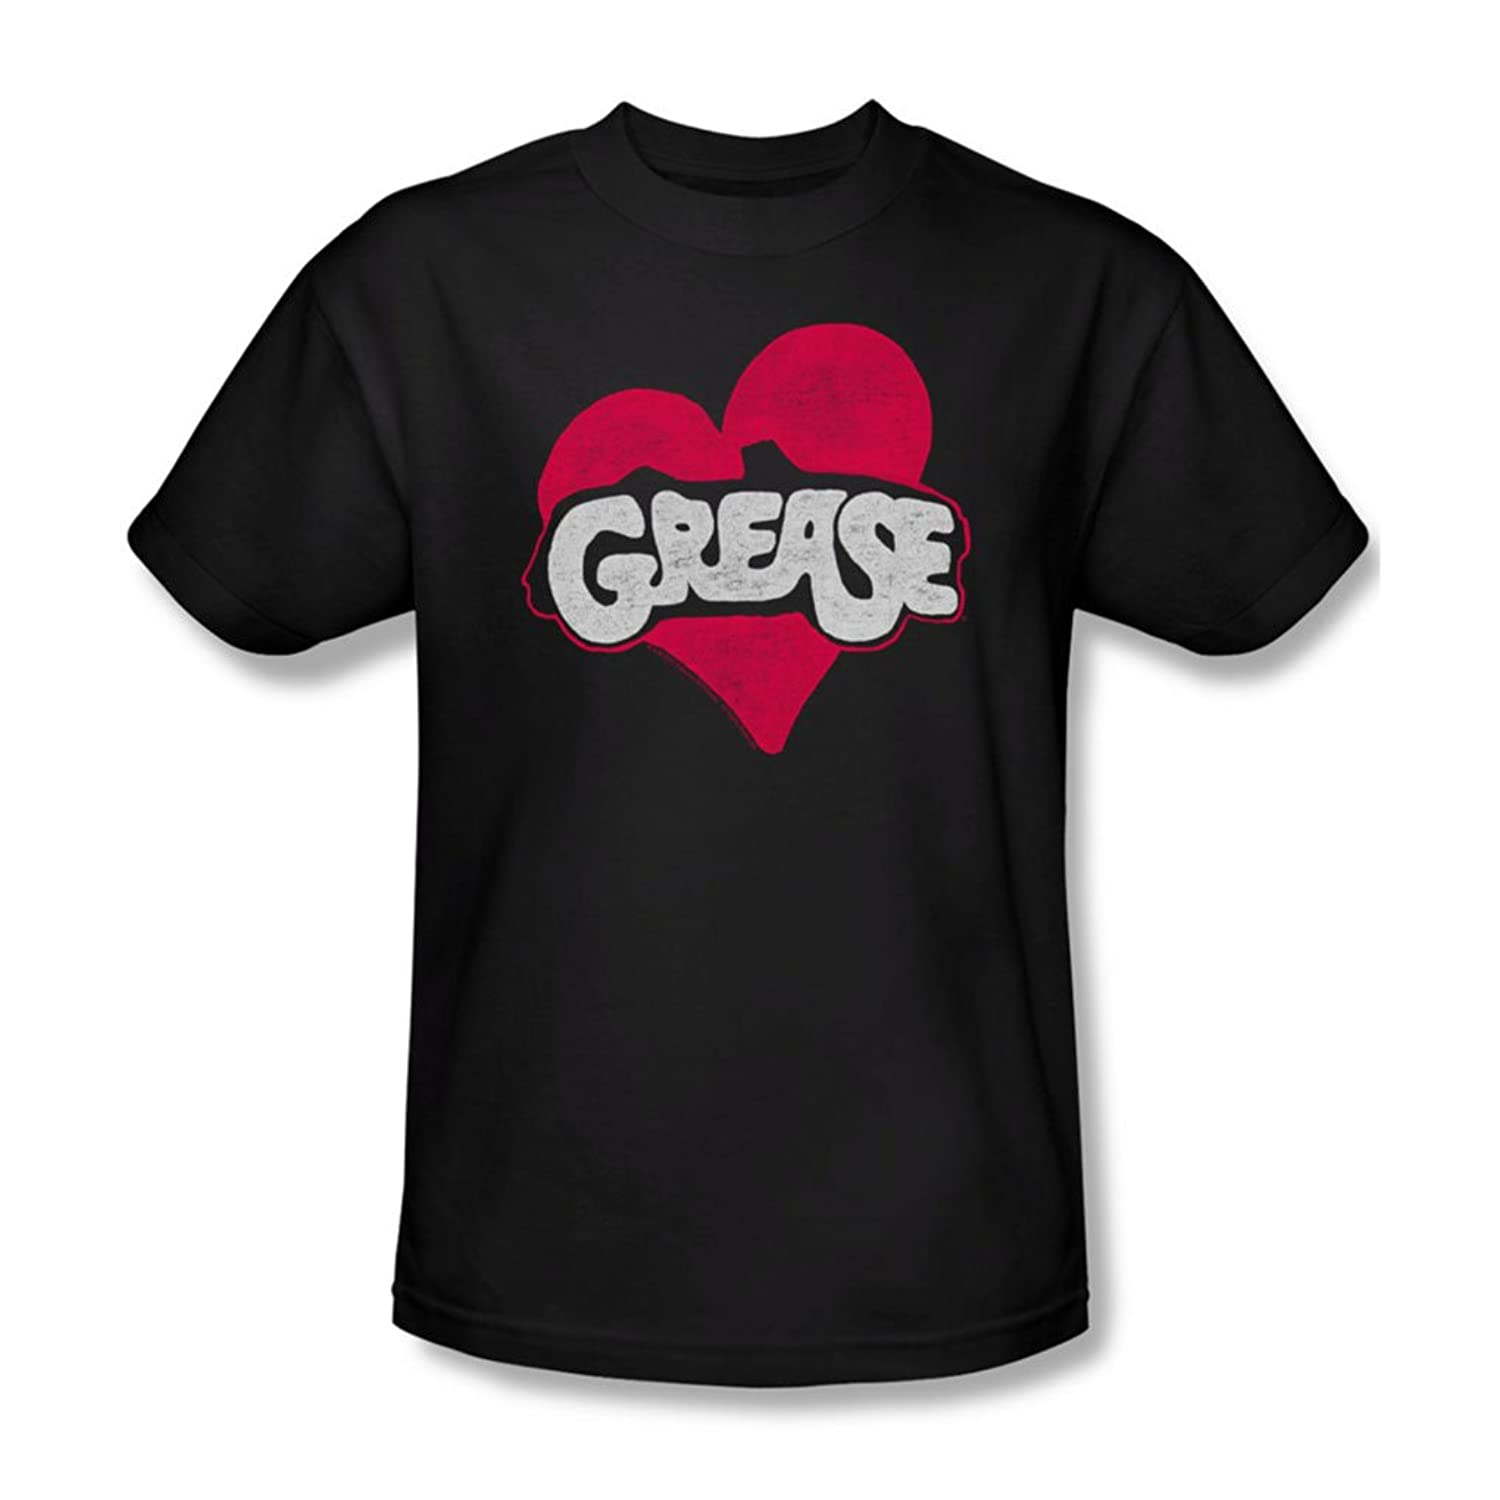 Grease - Mens Heart T-Shirt In Black